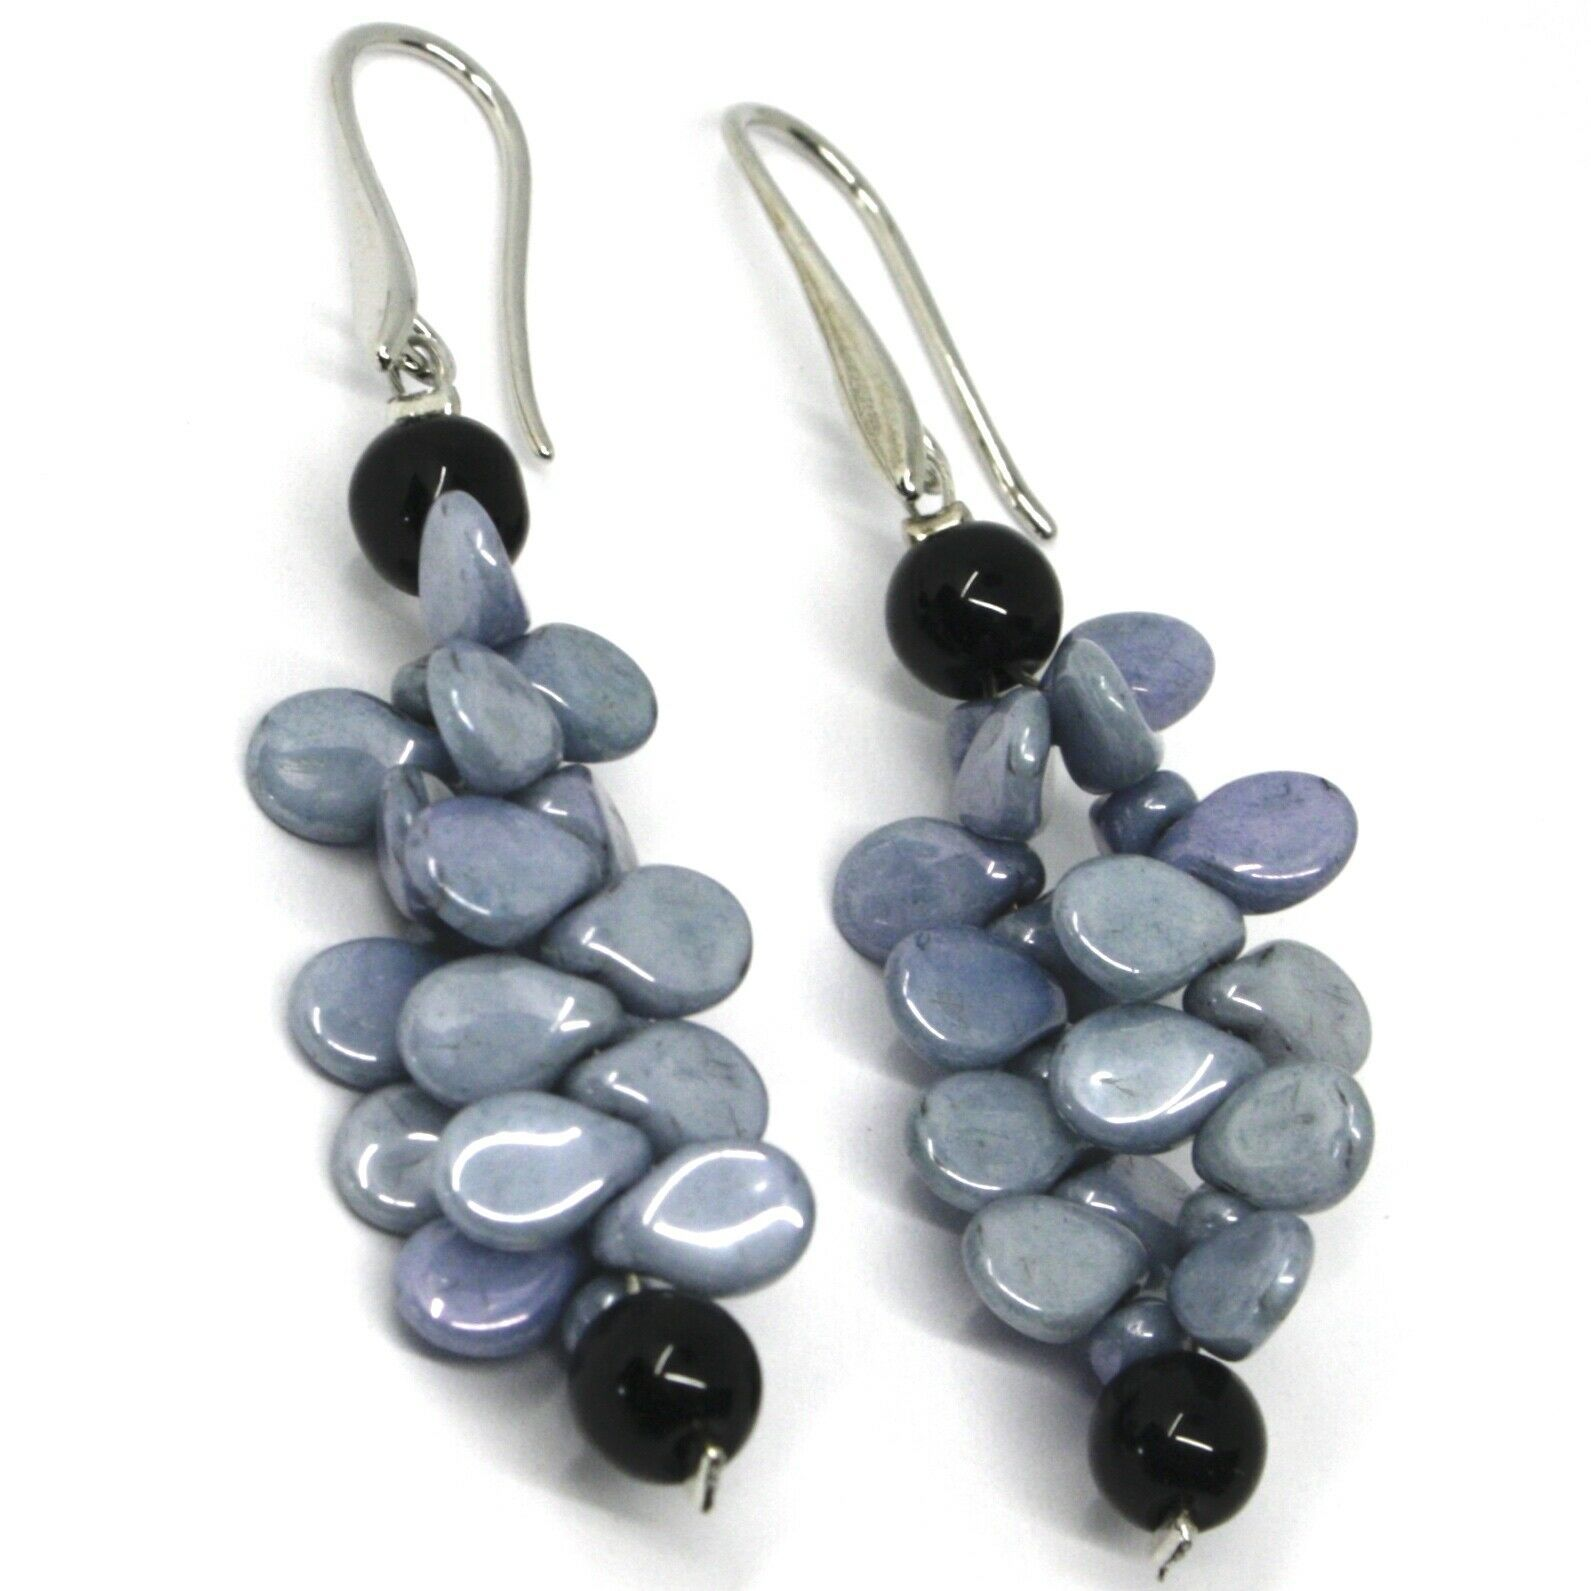 PENDANT EARRINGS GRAY BLACK MURANO GLASS, BUNCH OF PETAL DROPS MADE IN ITALY